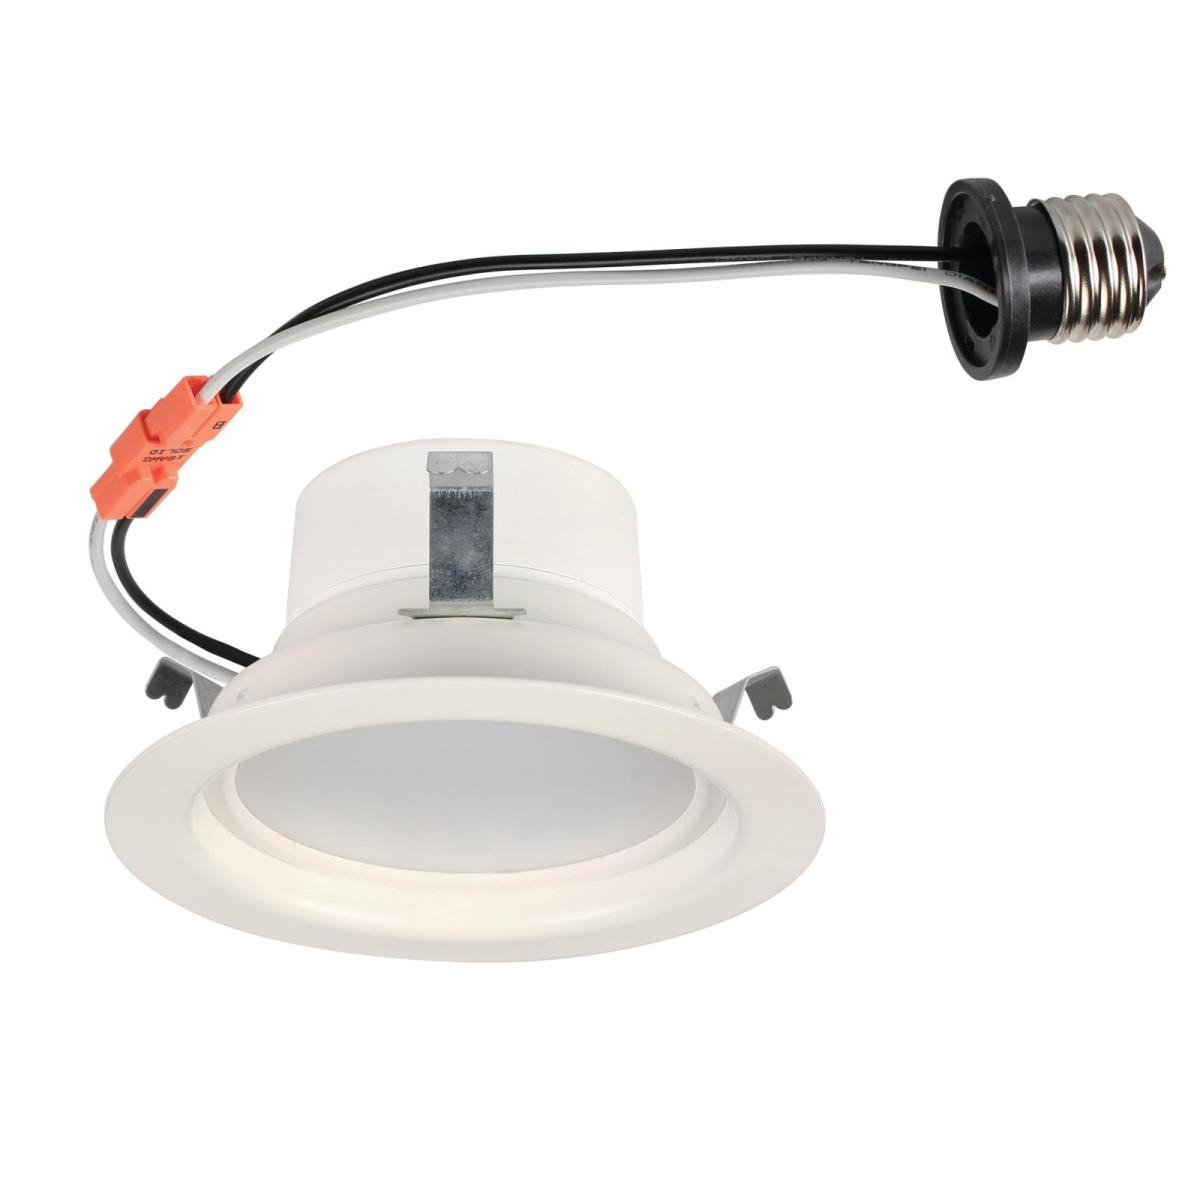 "8W Recessed LED Downlight 4"" Dimmable 3000K E26 (Medium) Base, 120 Volt, Box"